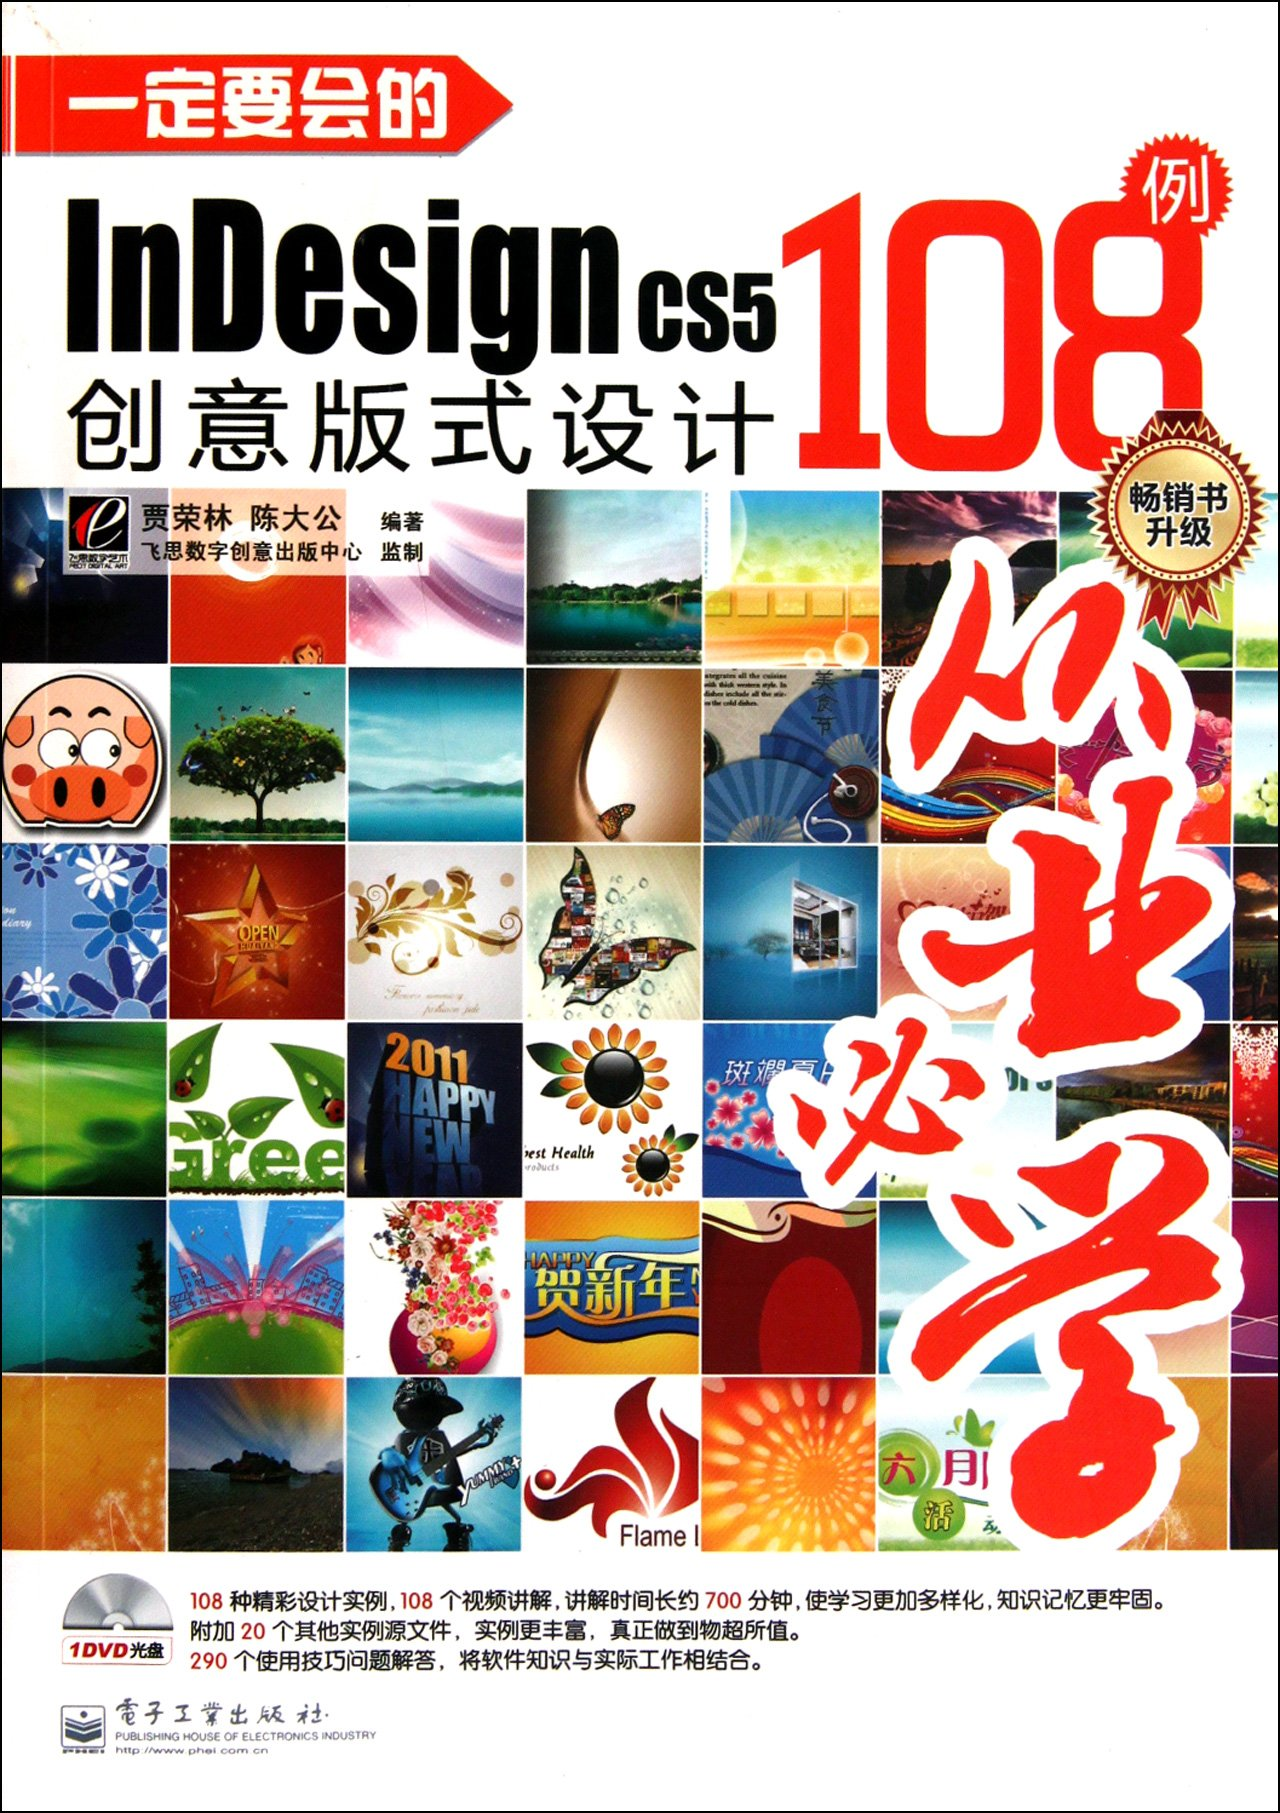 Read Online Must be of Indesign cs5 creative layout design 108 cases practitioners will learn pdf